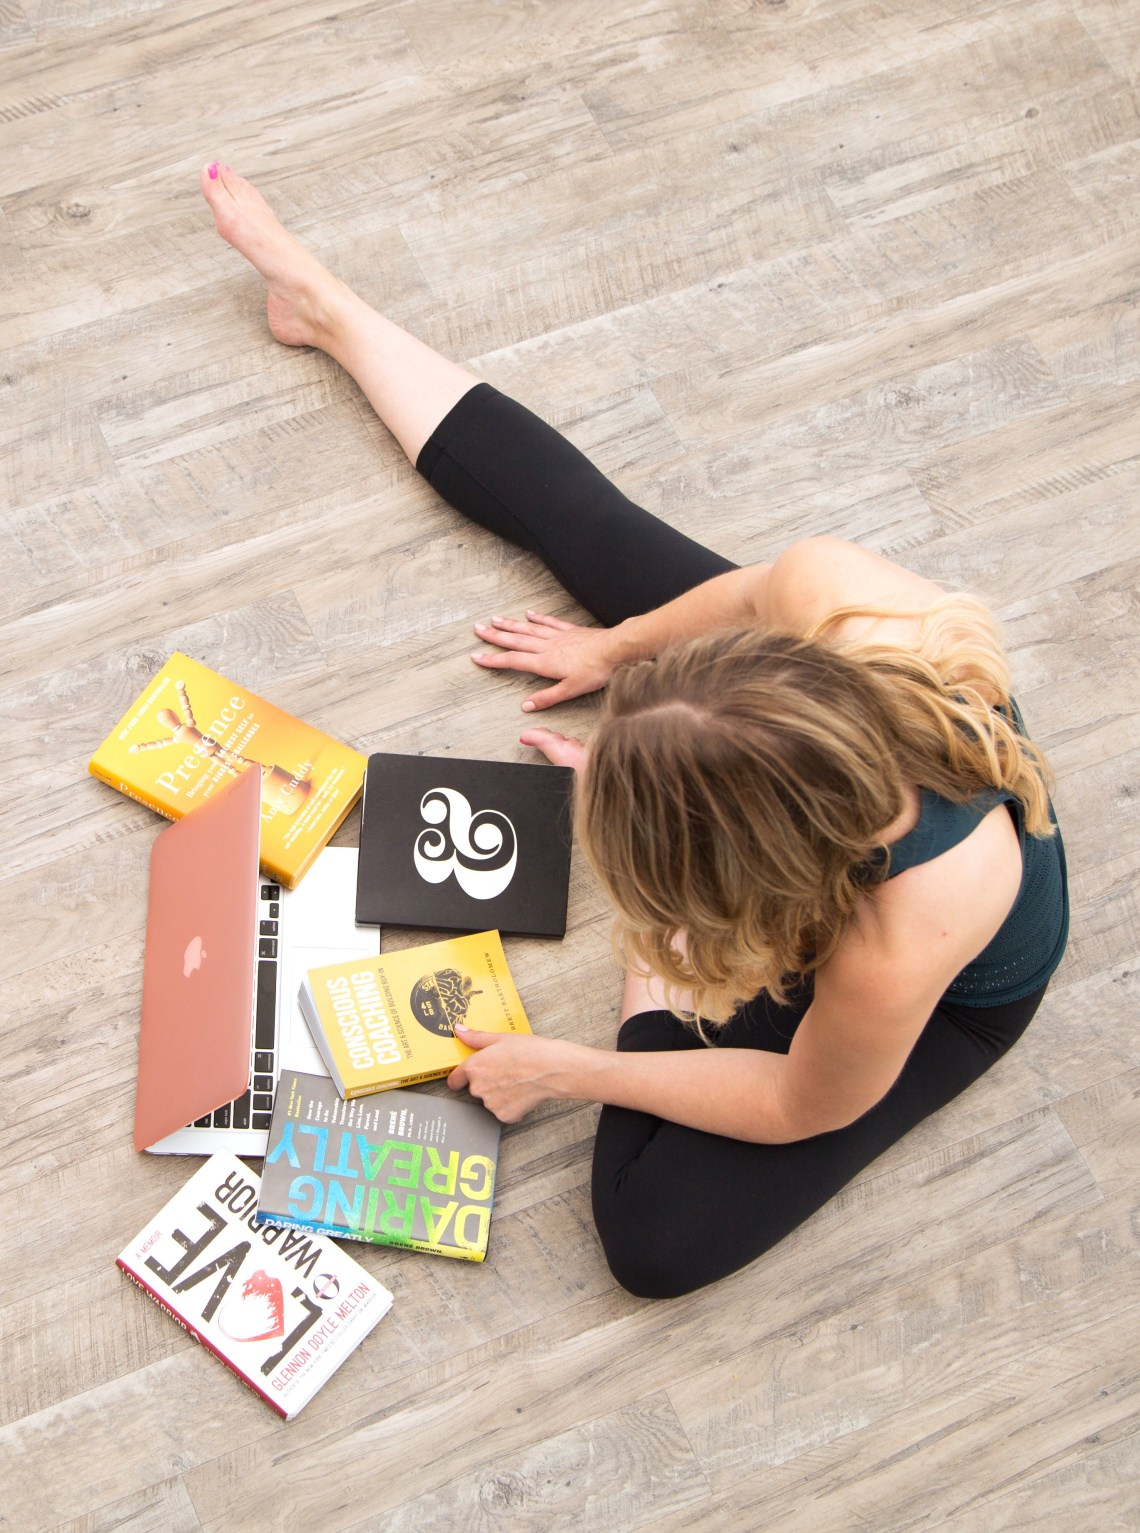 5 Books That Made Me Grow-Emma Jack, a well-accomplished physiotherapist discusses 5 books that helped her grow both personally and professionally.